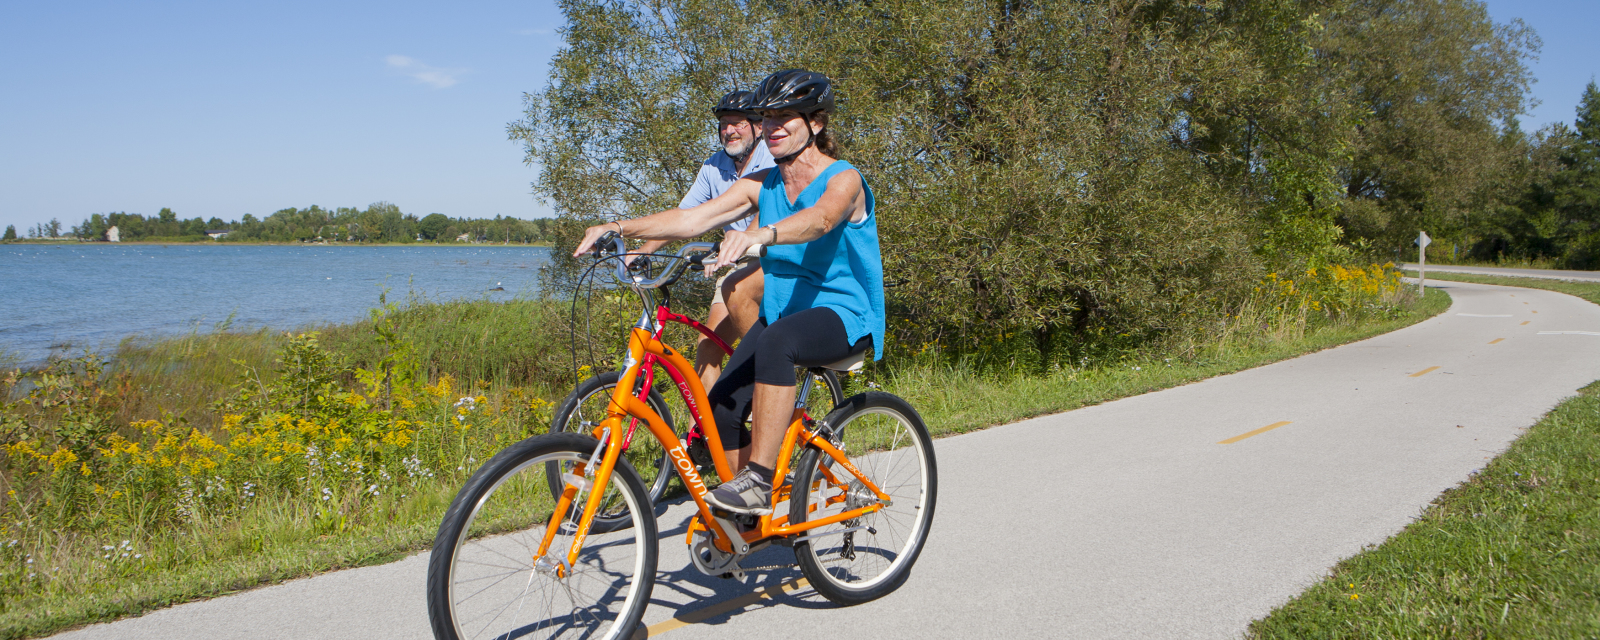 Ride the waterfront trail.